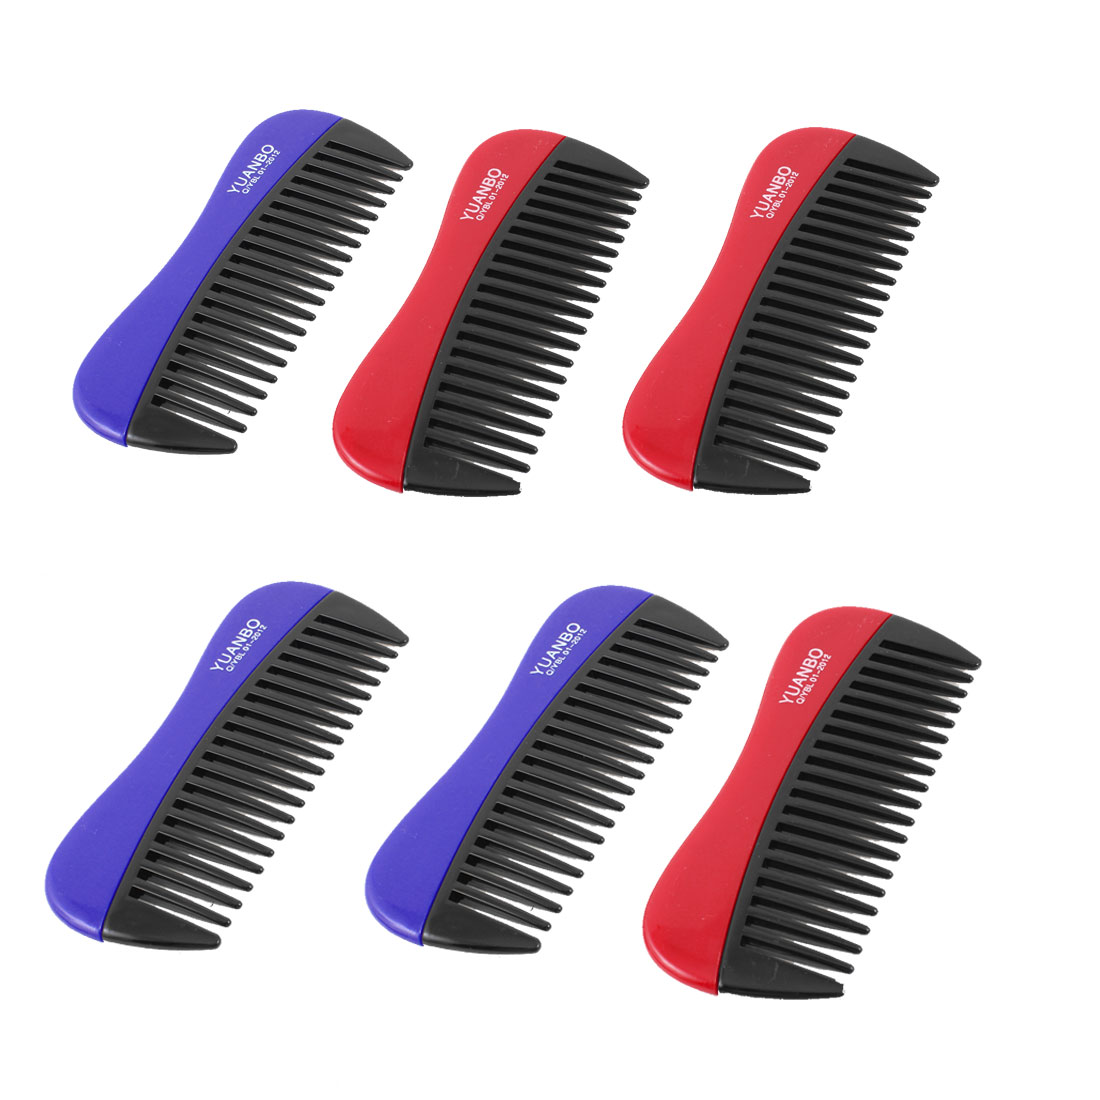 "Lady Hairdressing Anti Static Plastic Hair Comb Blue Red 4.6"" Long 6 Pcs"